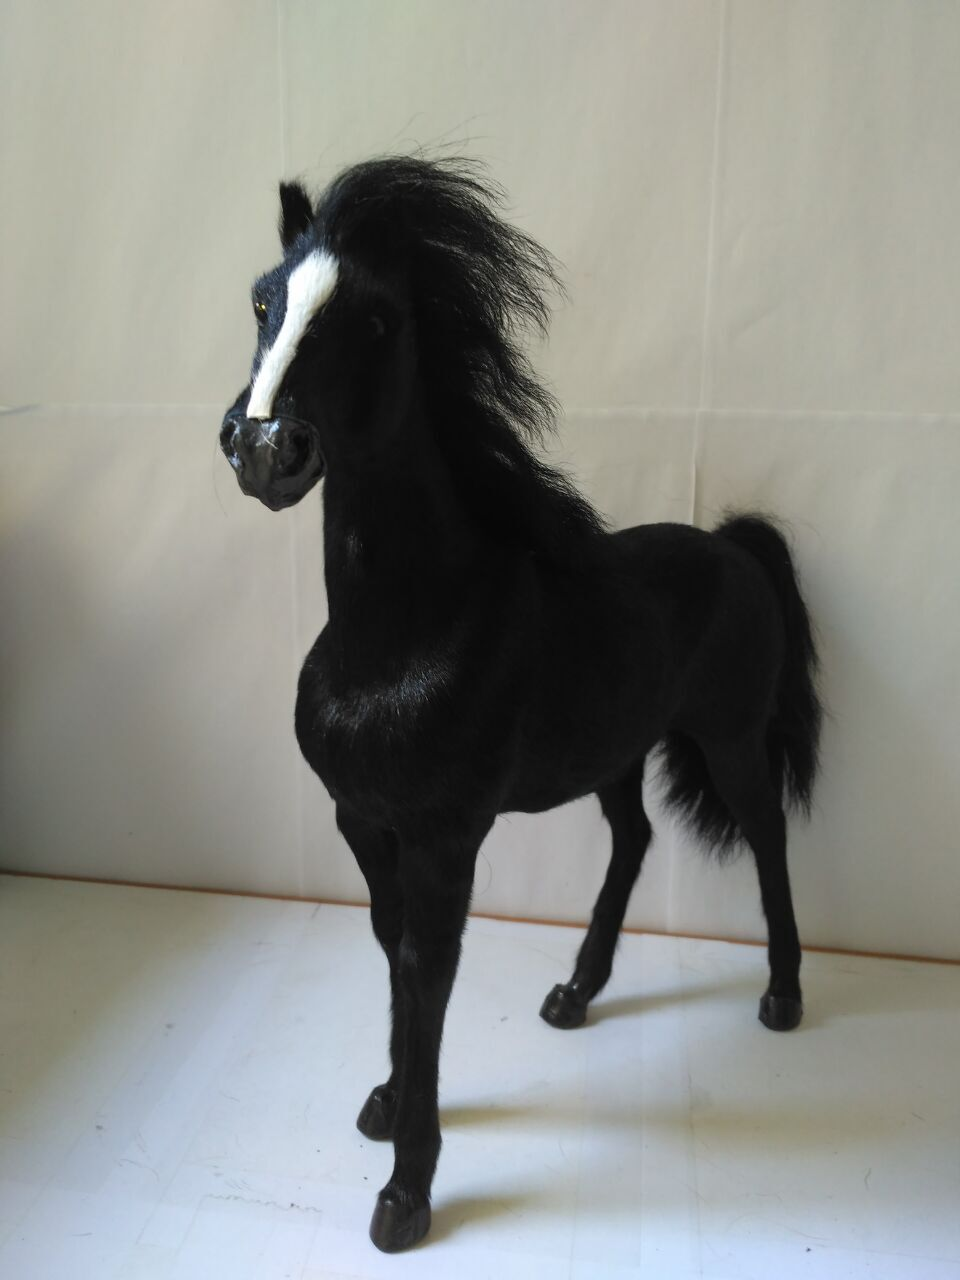 big simulation black horse toy polyethylene&furs war horse model doll gift about 34x36cm 1979 simulation horse large 36x34cm hard model polyethylene